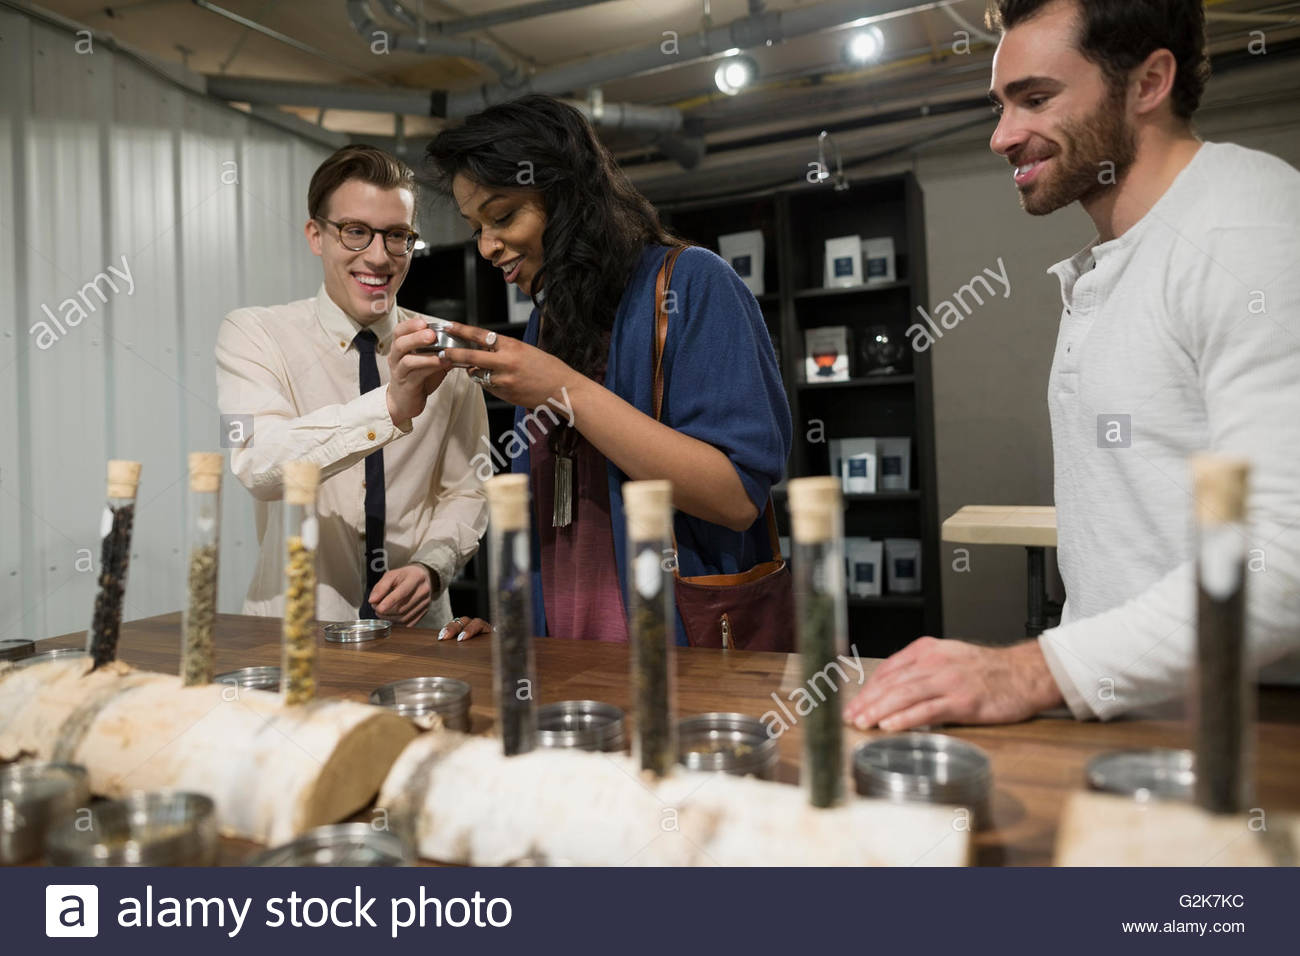 Tea shop owner showing tea to customers - Stock Image